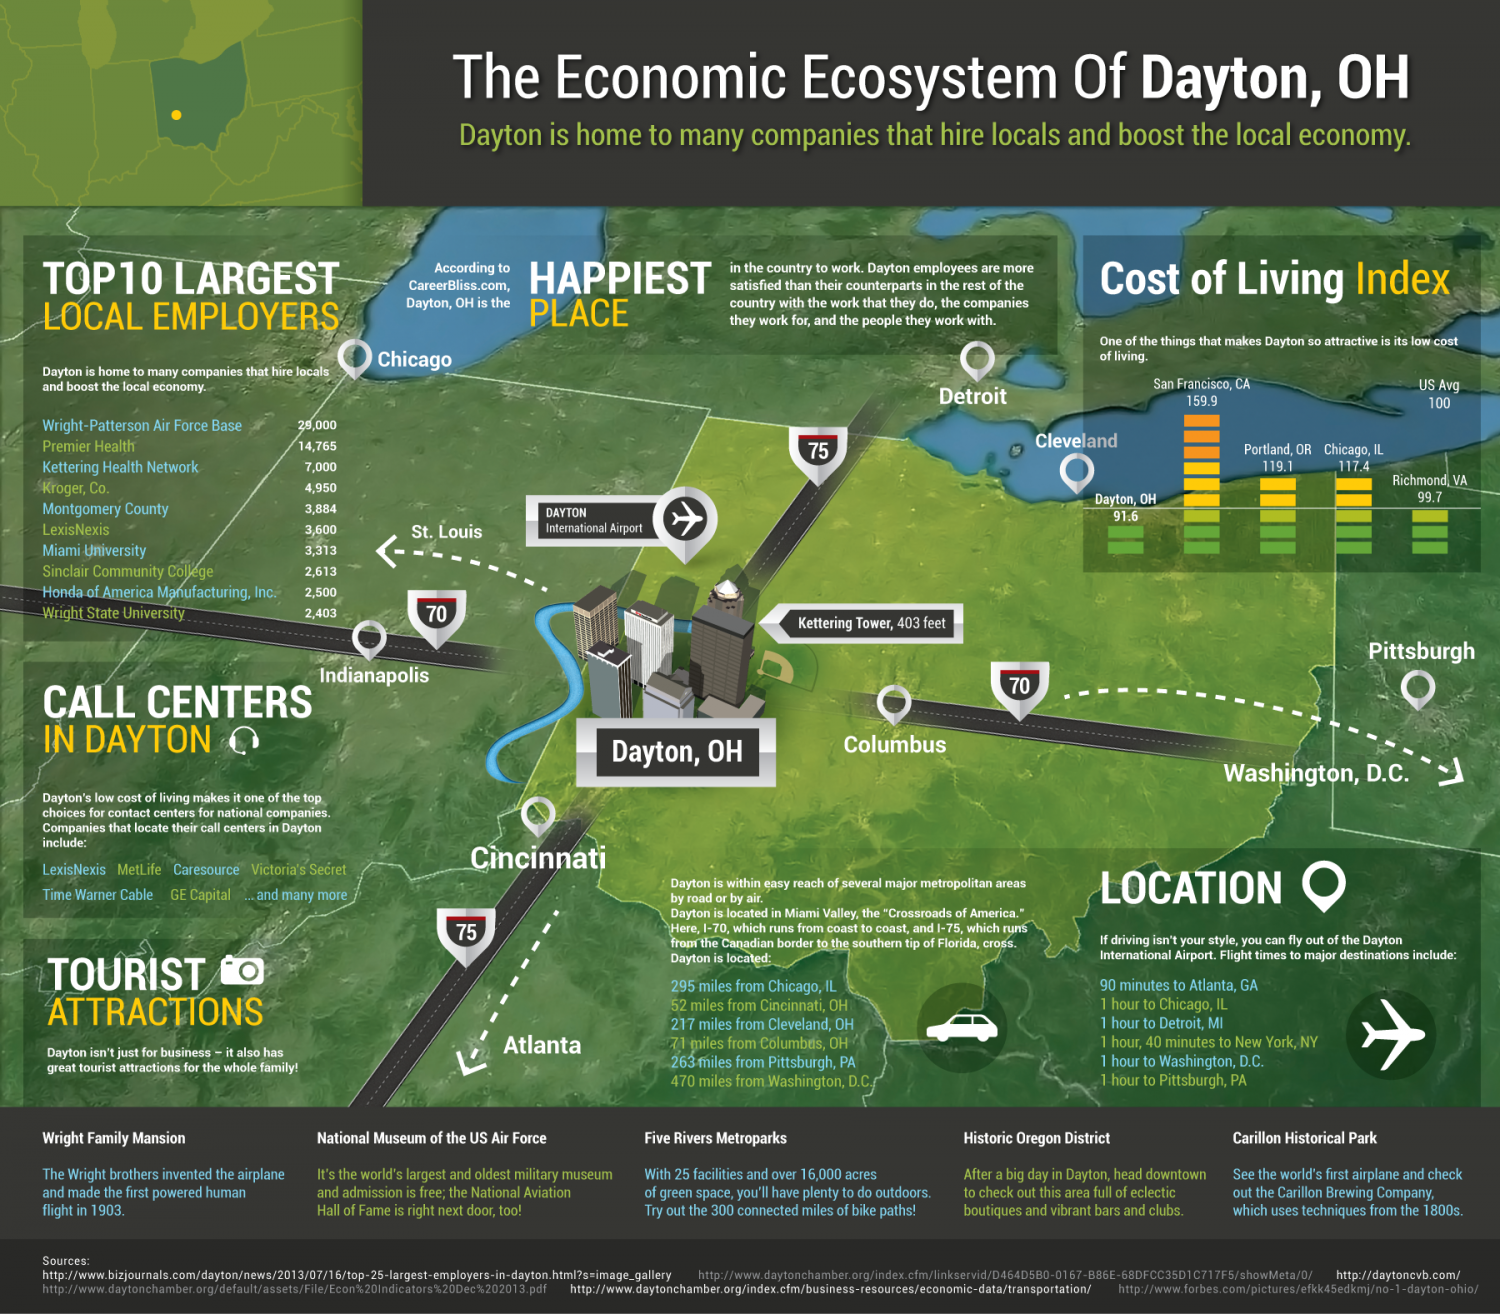 The Economic Ecosystem of Dayton, OH Infographic